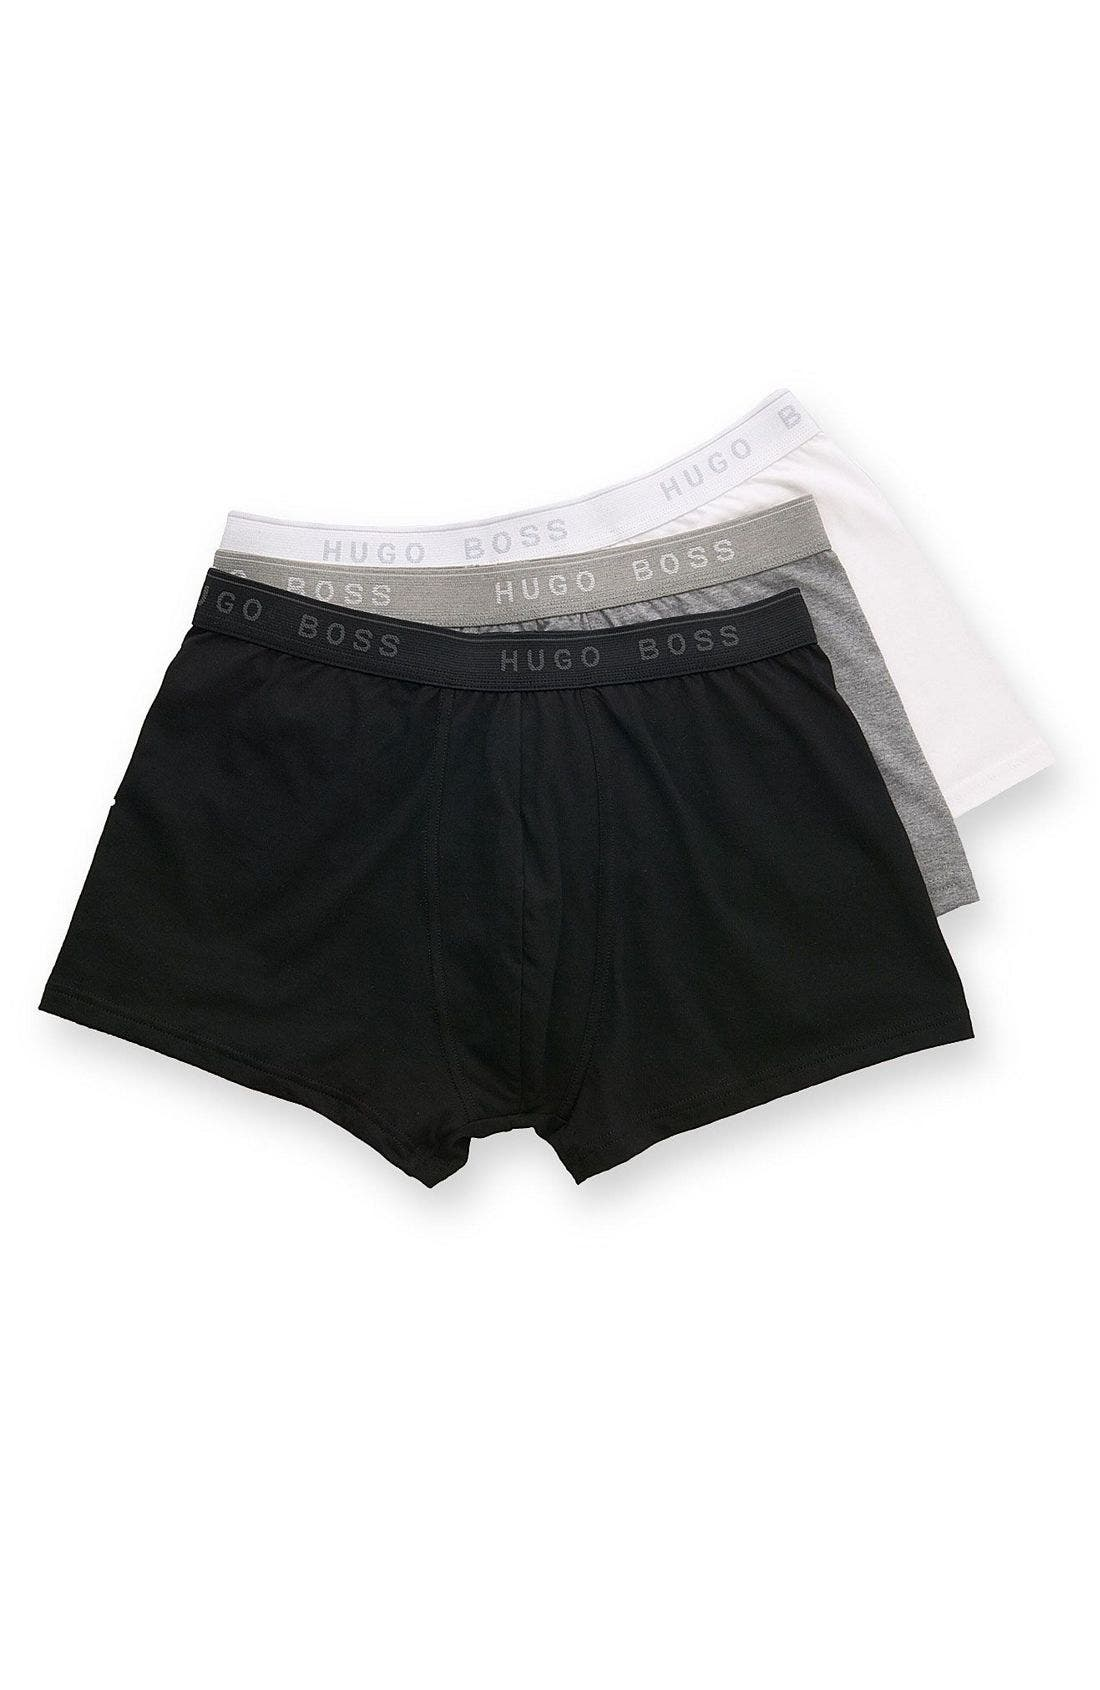 Alternate Image 3  - BOSS Black Boxer Briefs (Assorted 3-Pack)